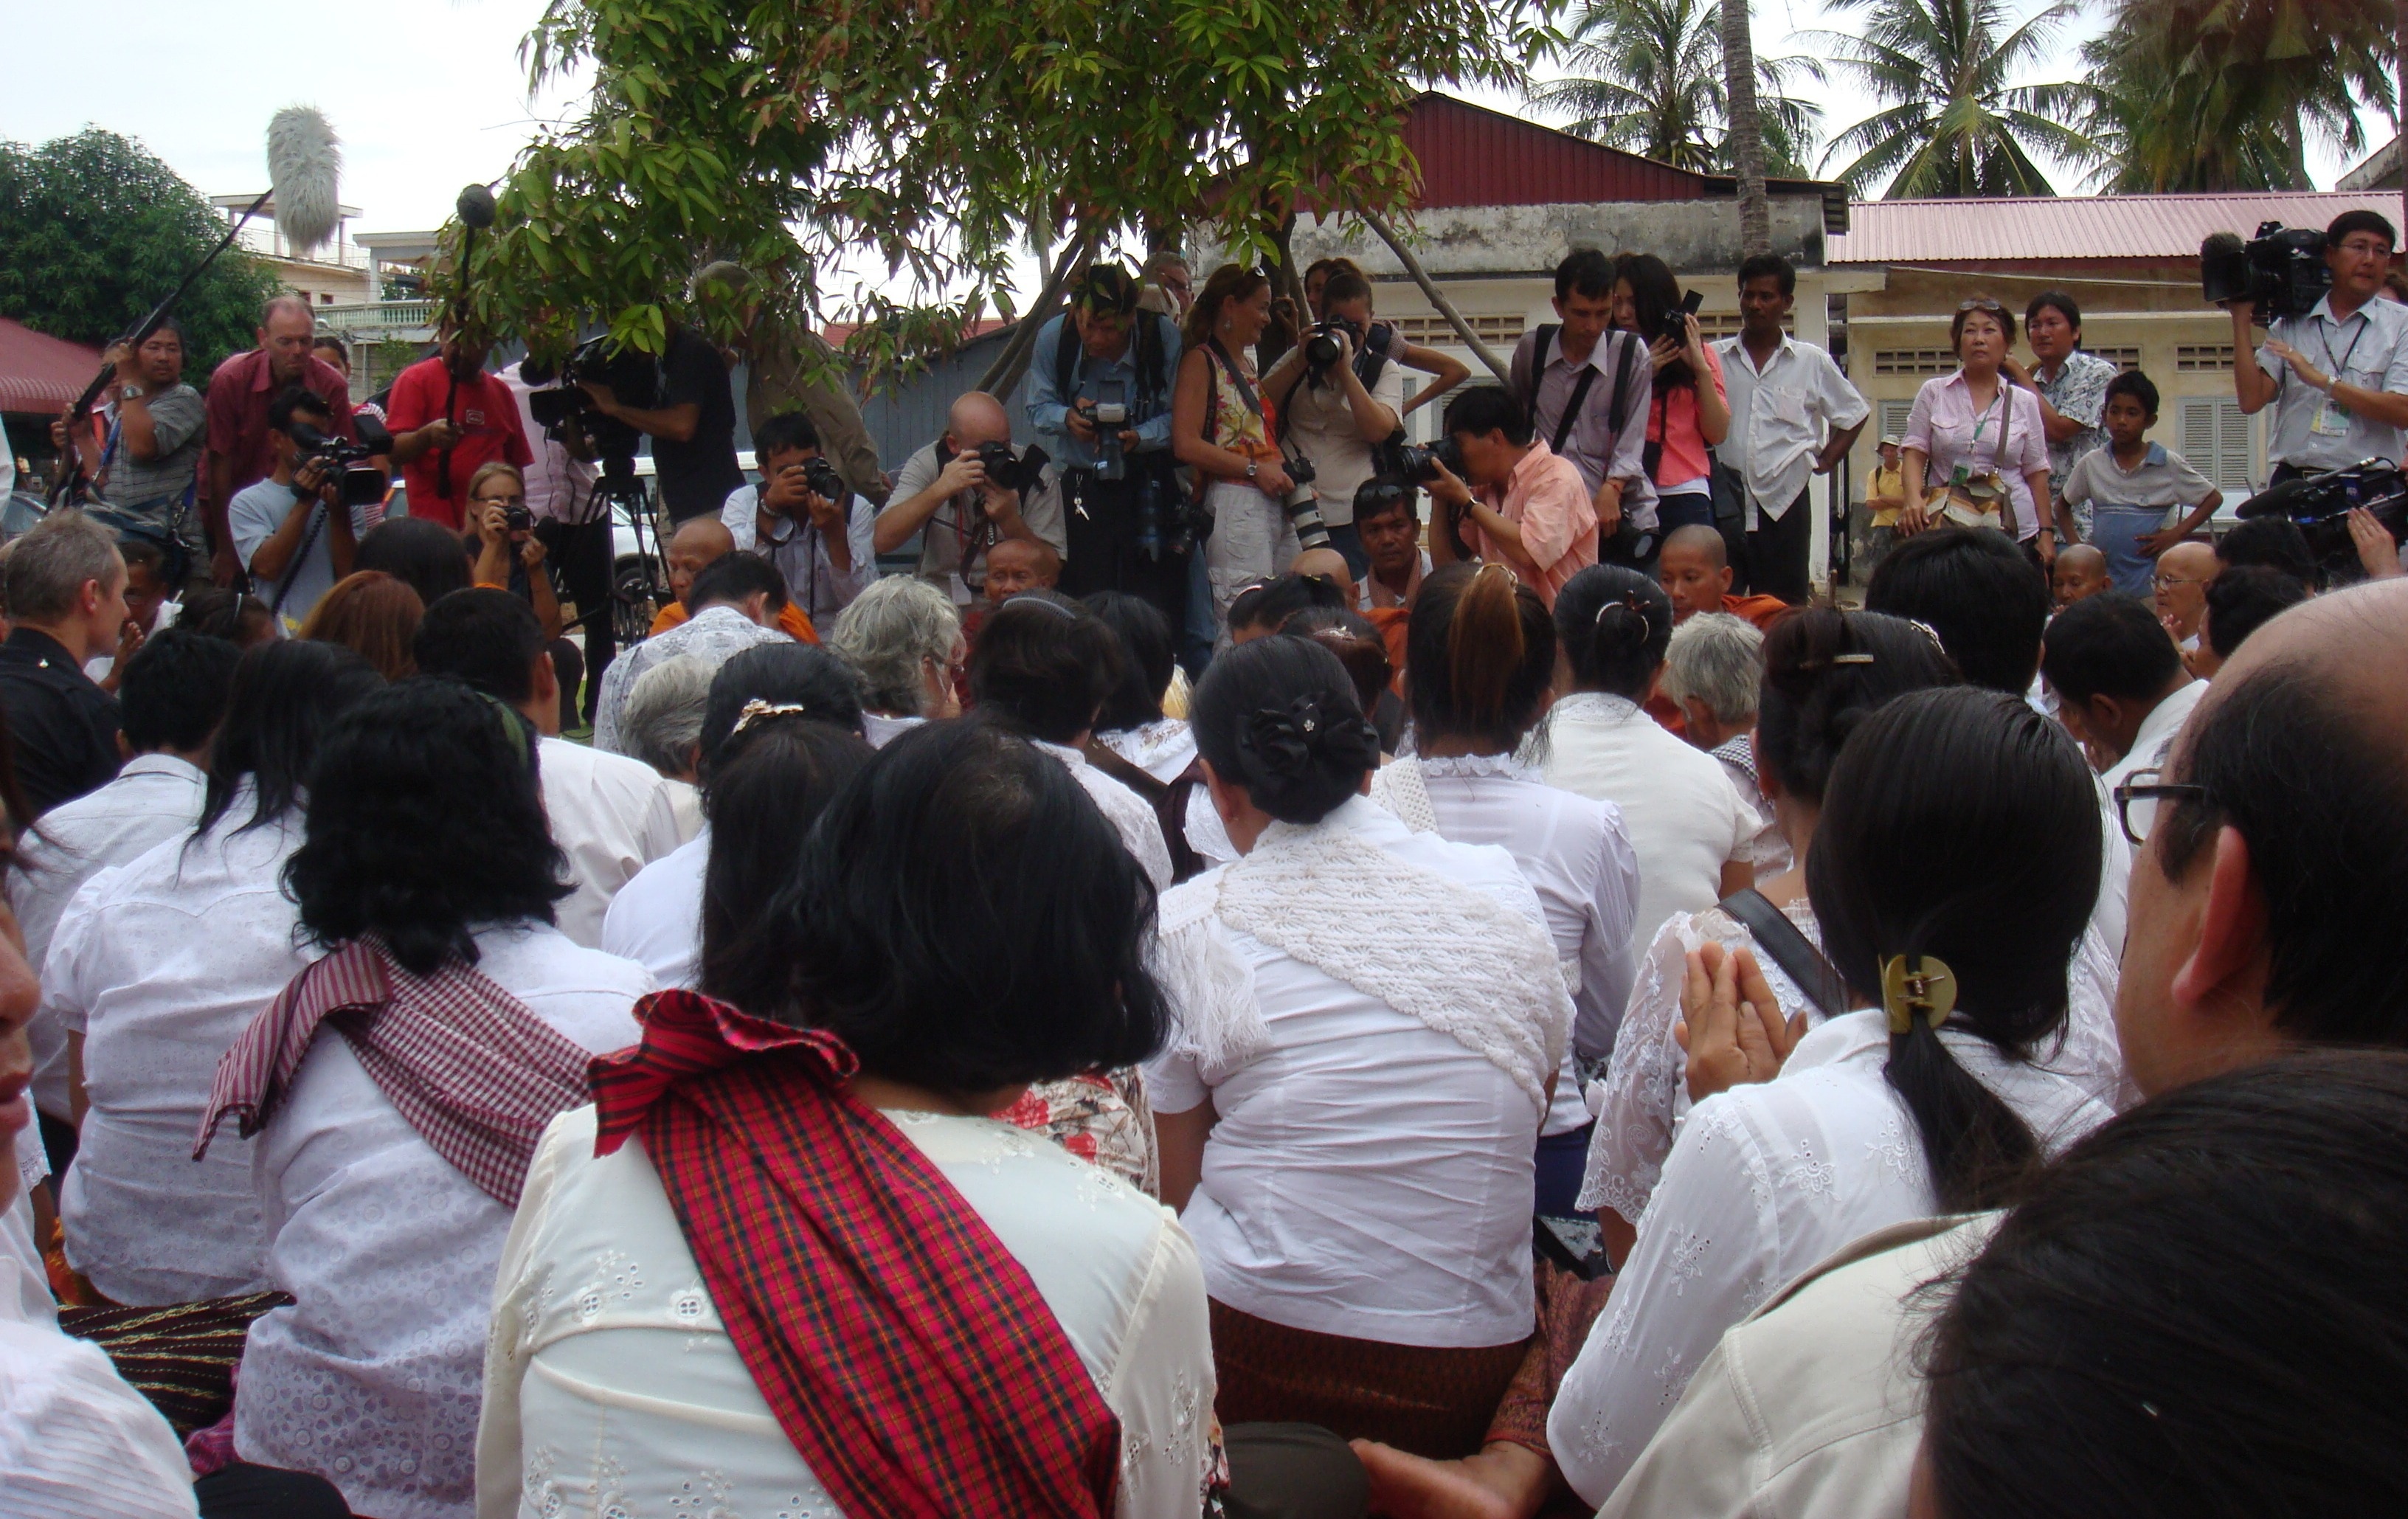 Theary Seng at Tuol Sleng, Sunday 25 July 2010